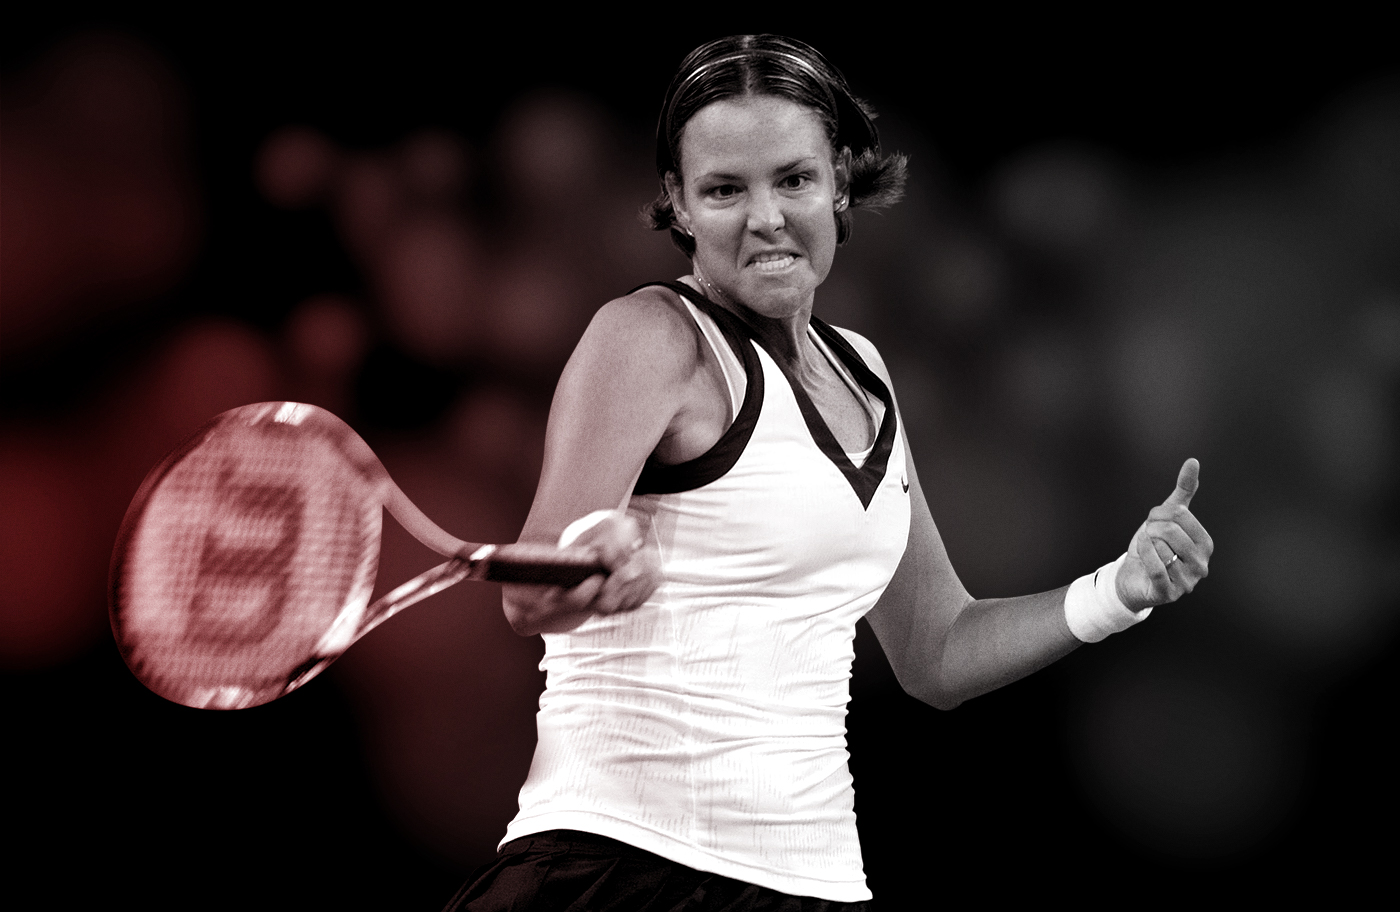 Lindsay Davenport 3 Grand Slam singles titles nude (66 photo) Porno, Facebook, see through